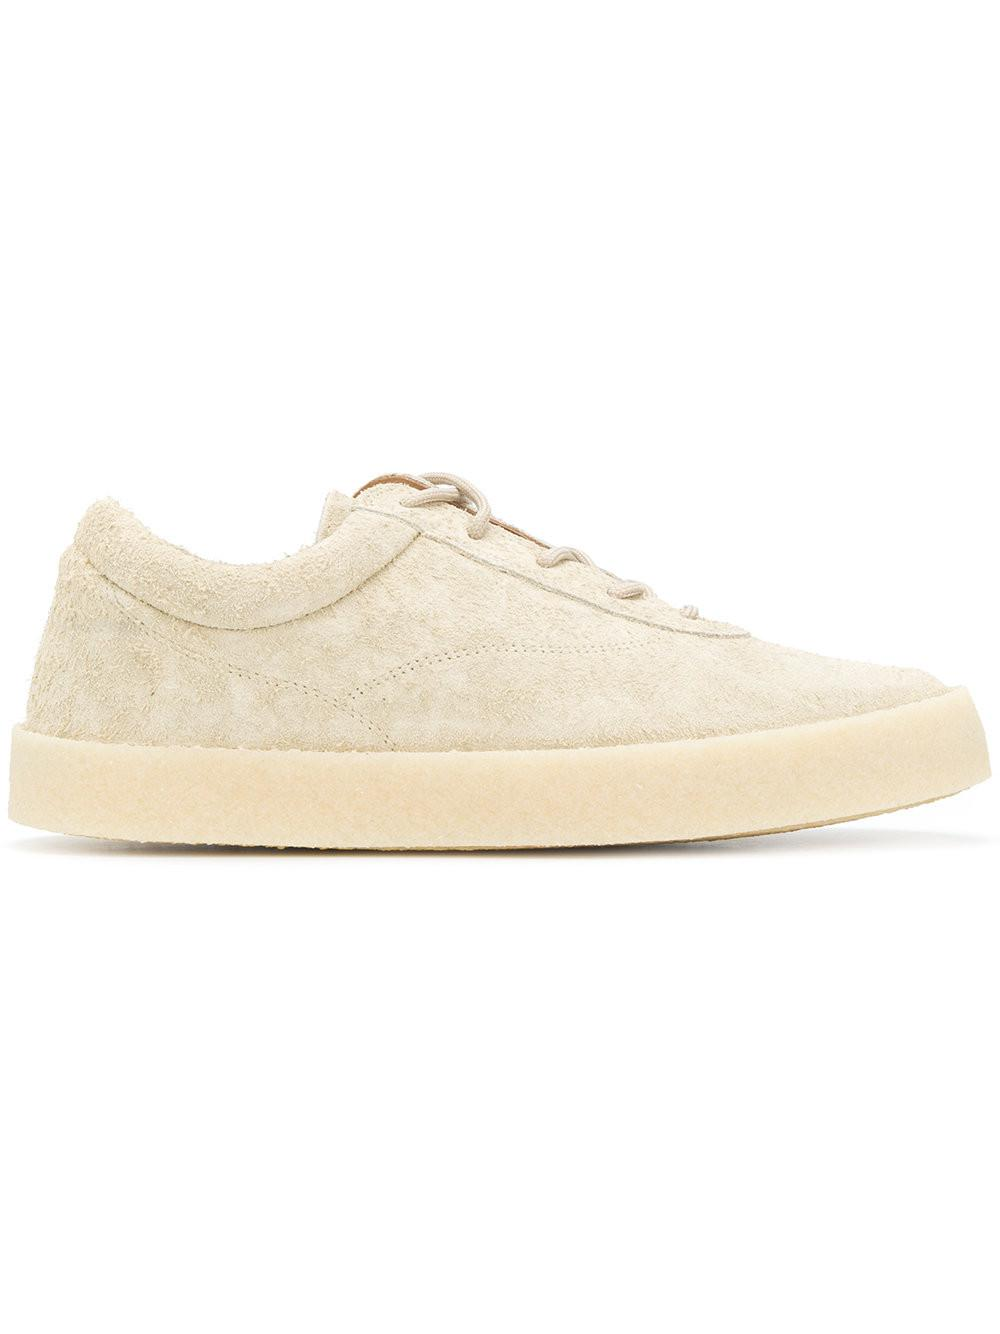 003f0ed6d47 Lyst - Yeezy Season 6 Crepe Sneakers for Men